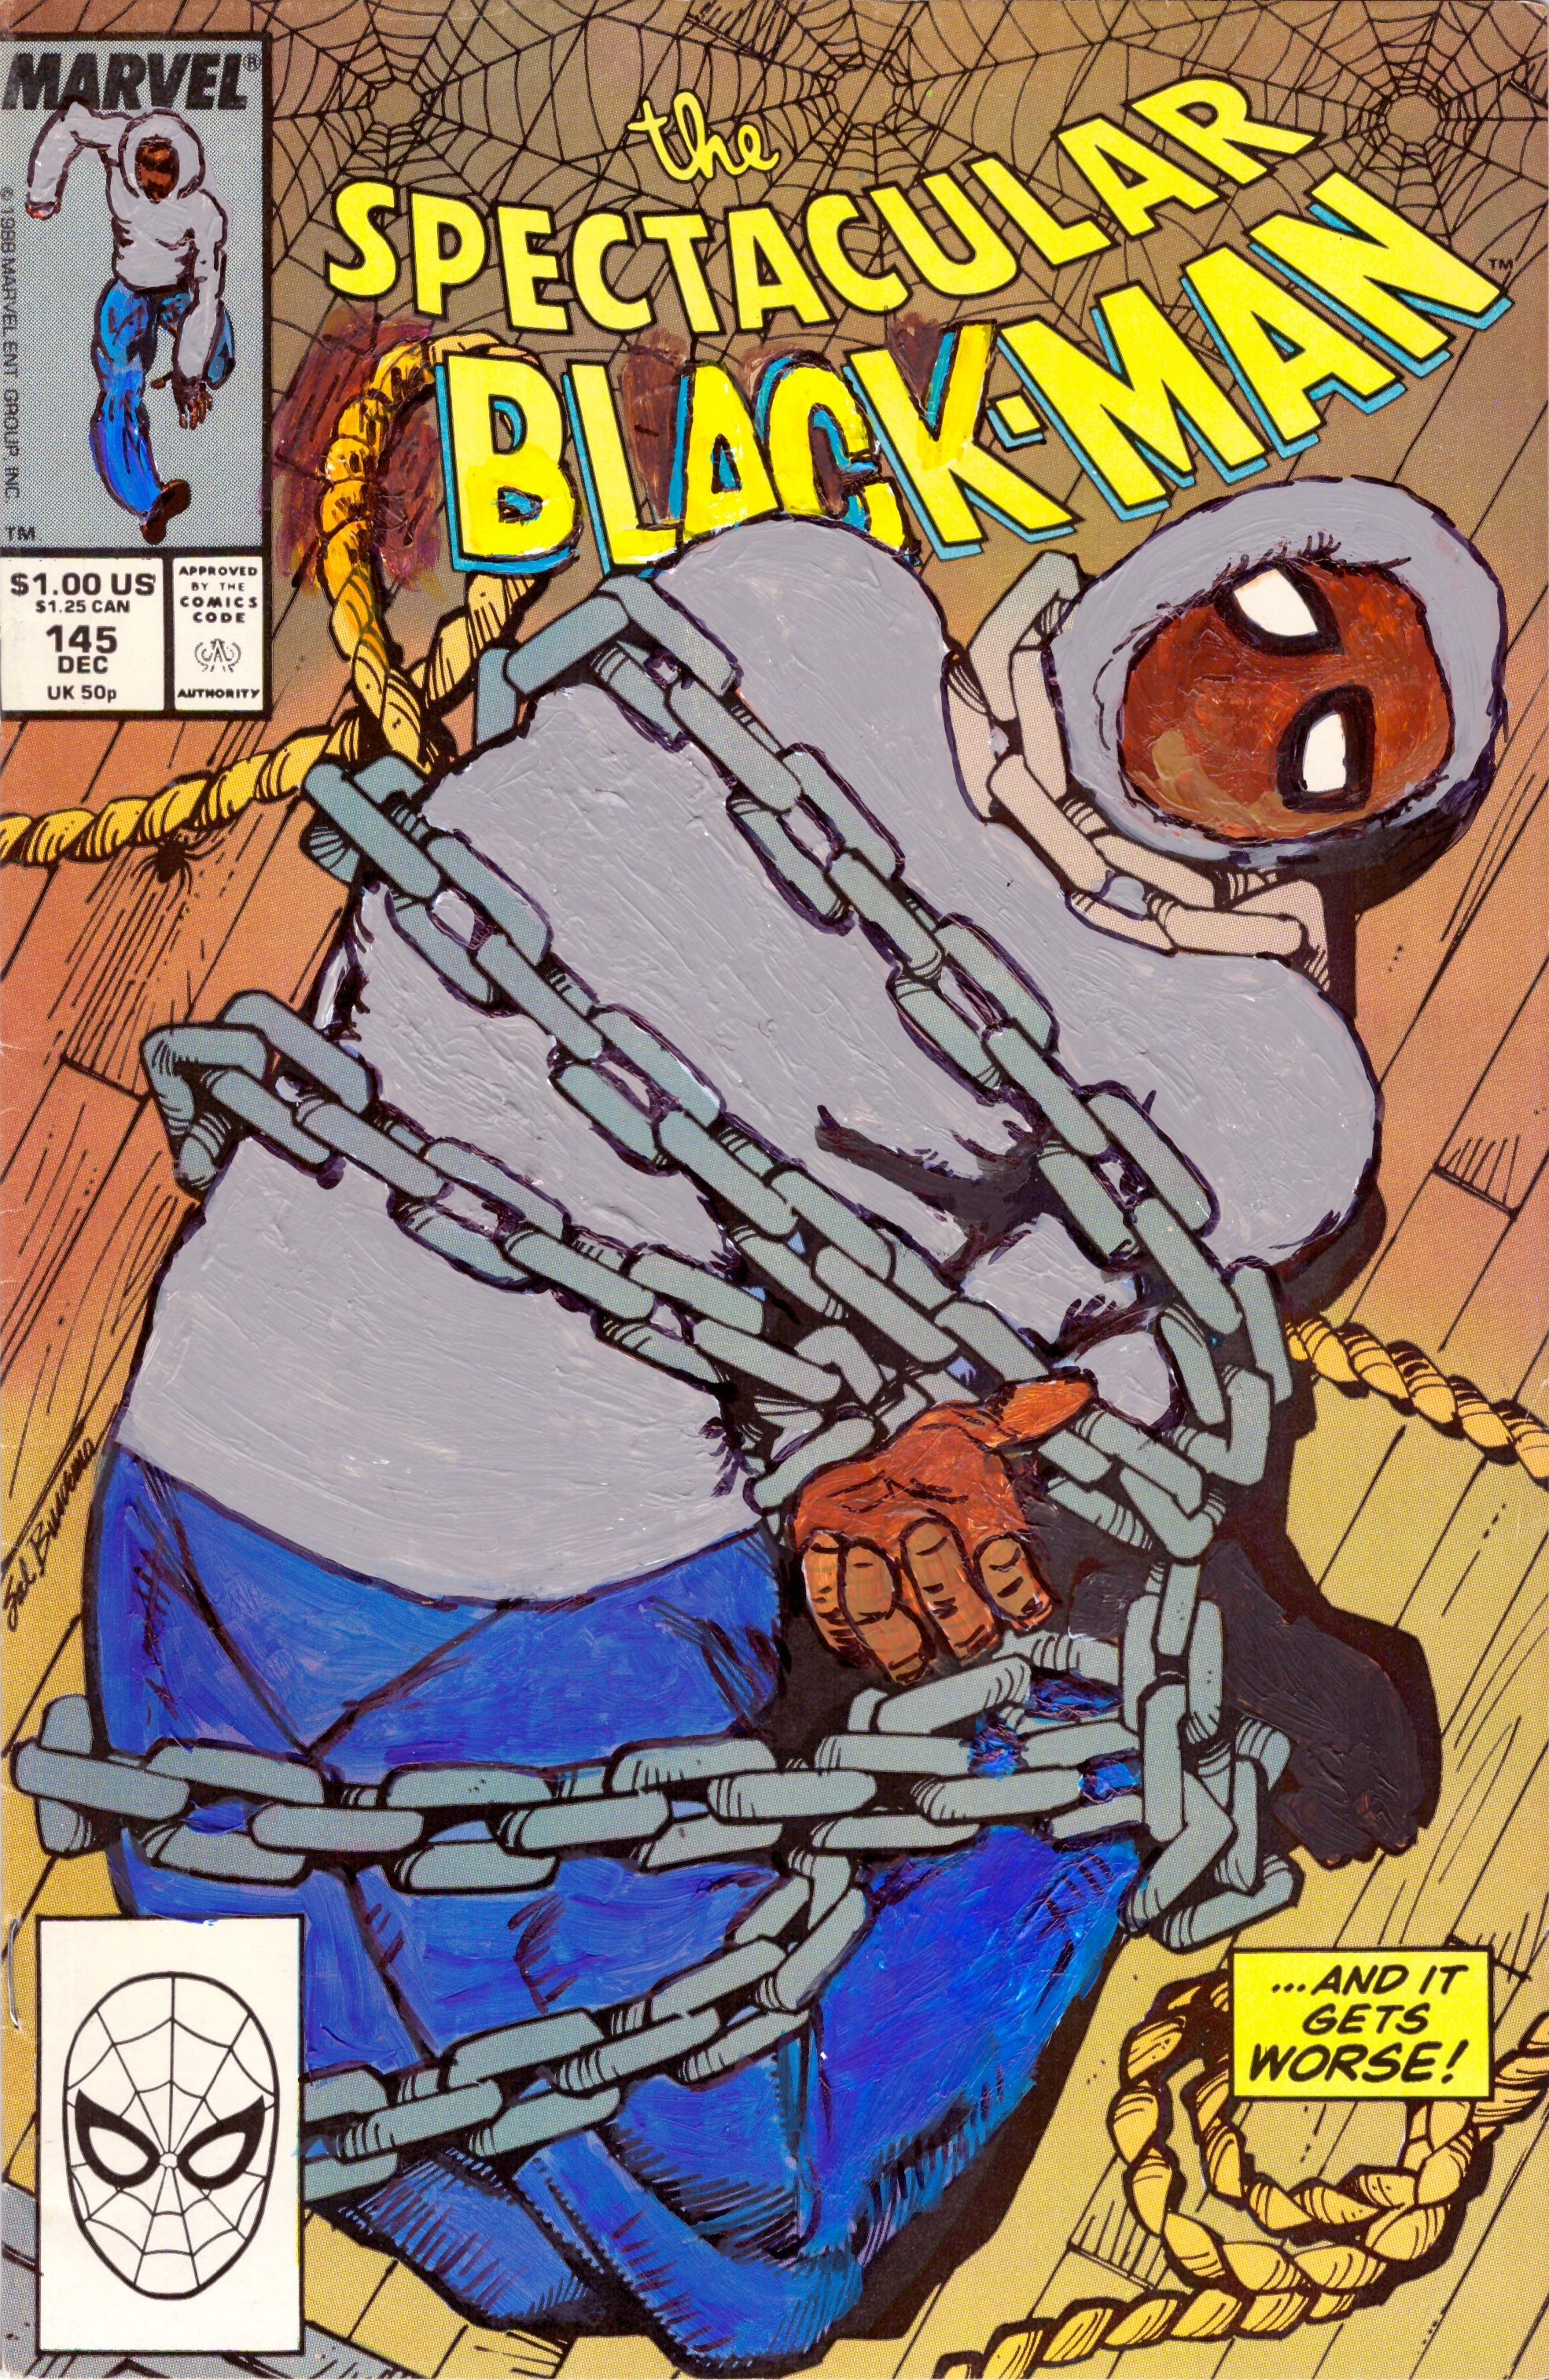 Kumasi J. Barnett Spectacular Black-Man #145 …And it gets Worse, 2019 Acrylic, marker, pen and oil marker on comic book 9 3/4h x 6 1/4w inches